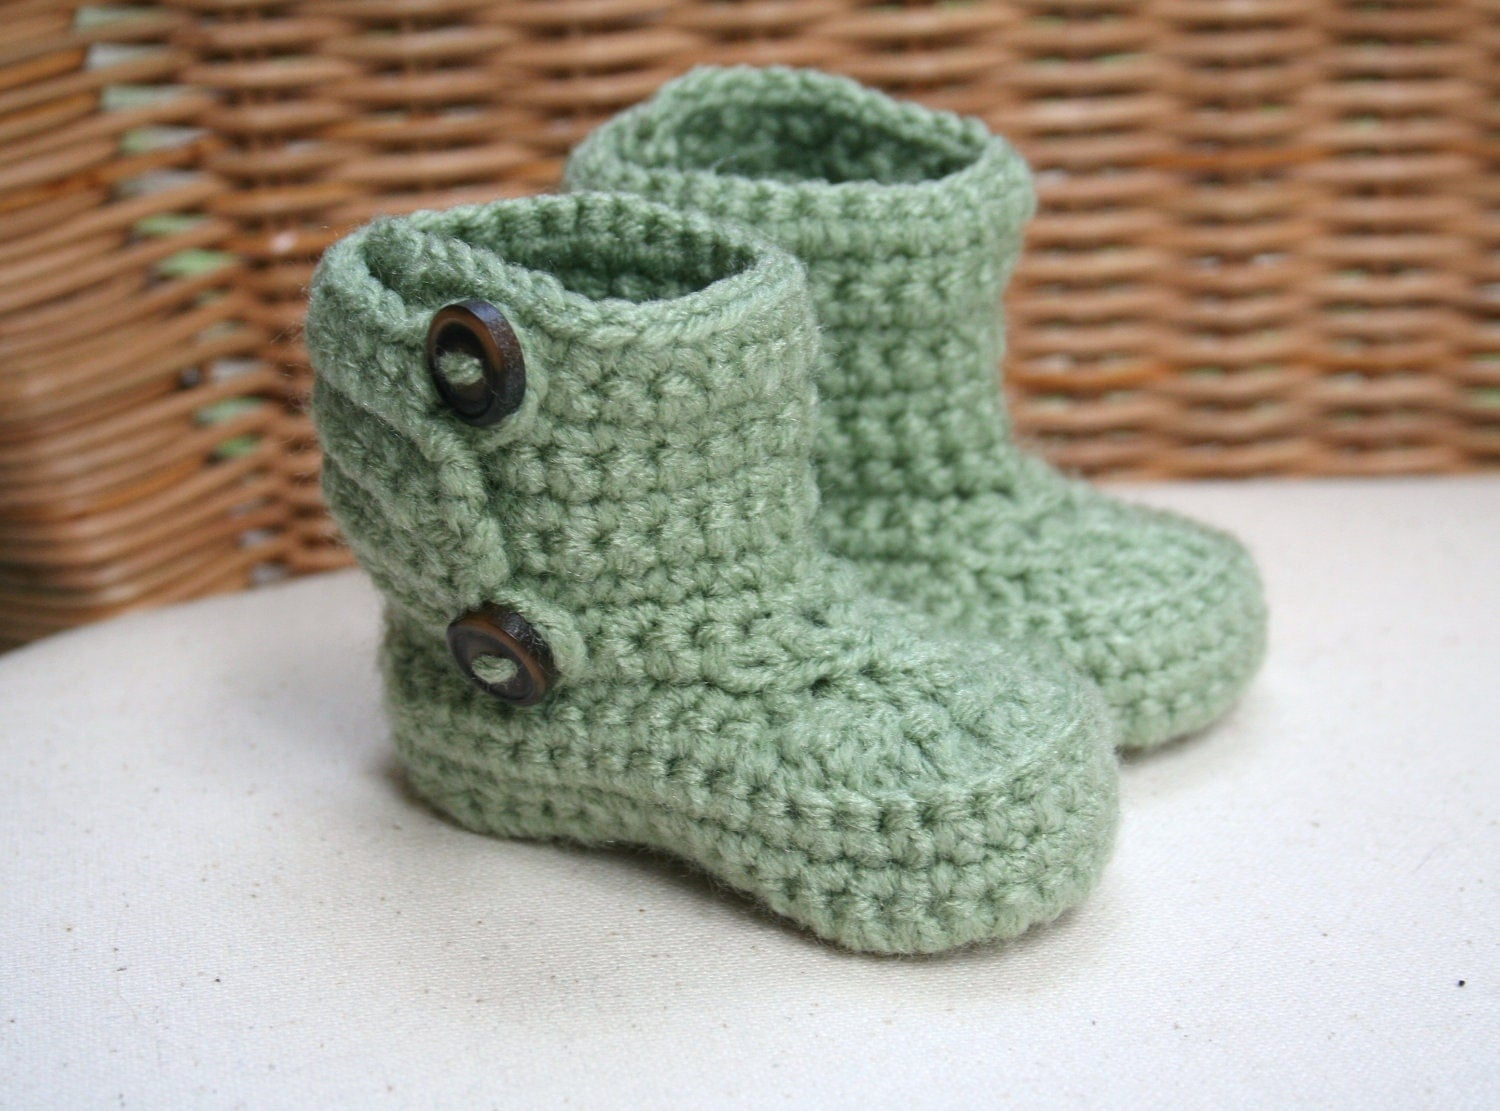 Crochet Wrap Around Button Baby Boots Pattern : Crochet Wrap Baby Booties with buttons Baby Boots Various